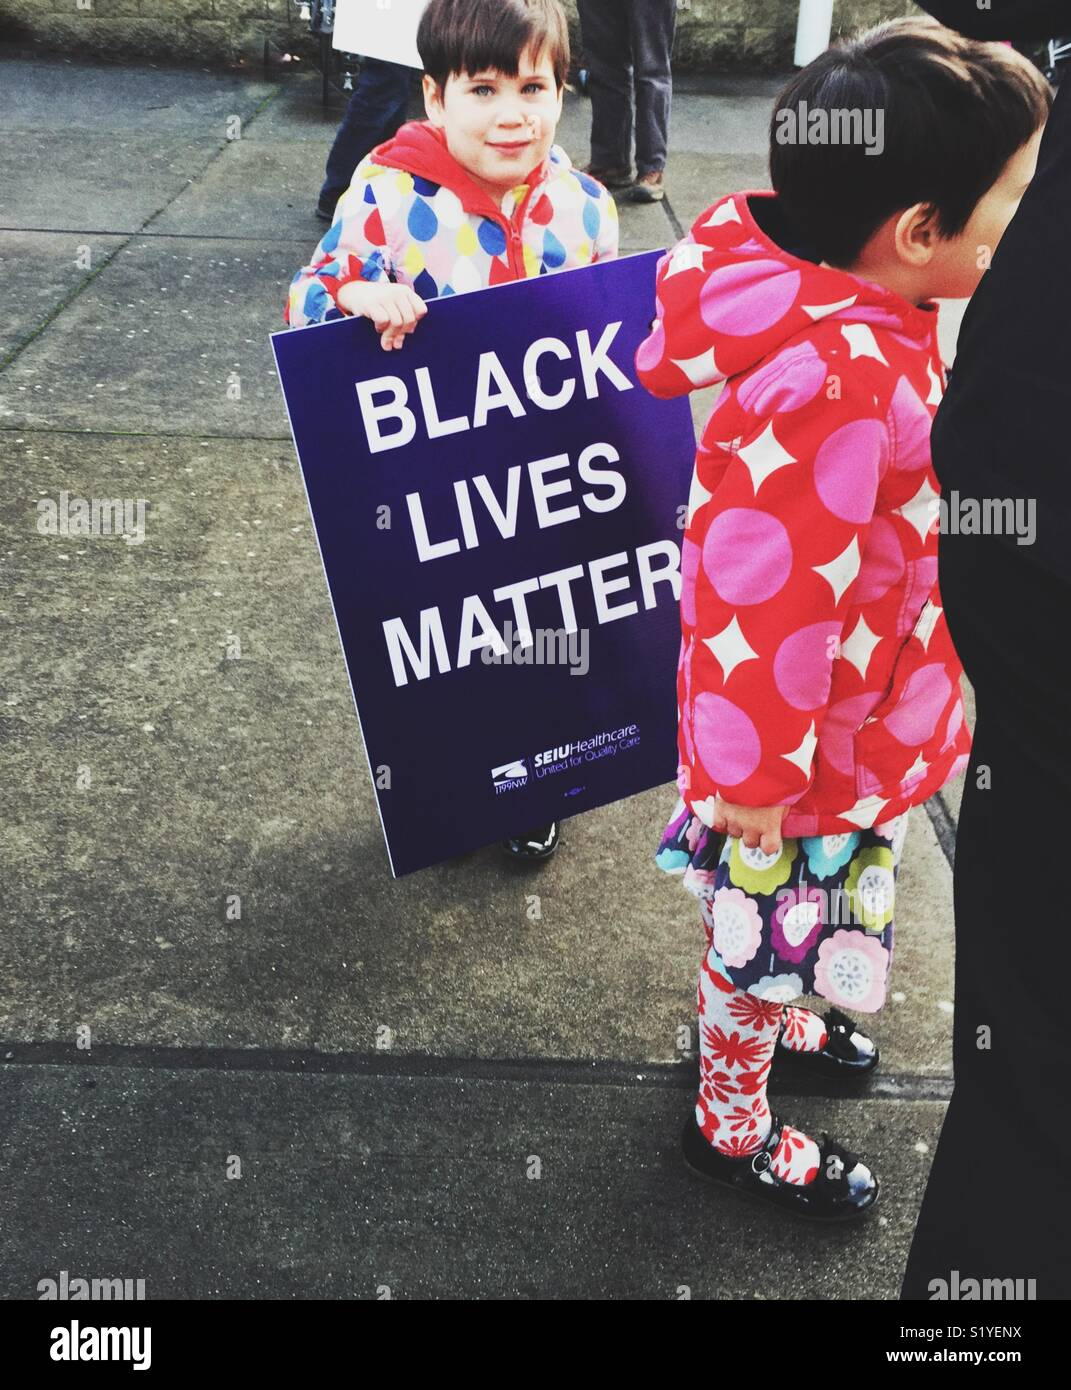 A young child holding Black Lives Matter sign on the street during protest march in Seattle - Stock Image